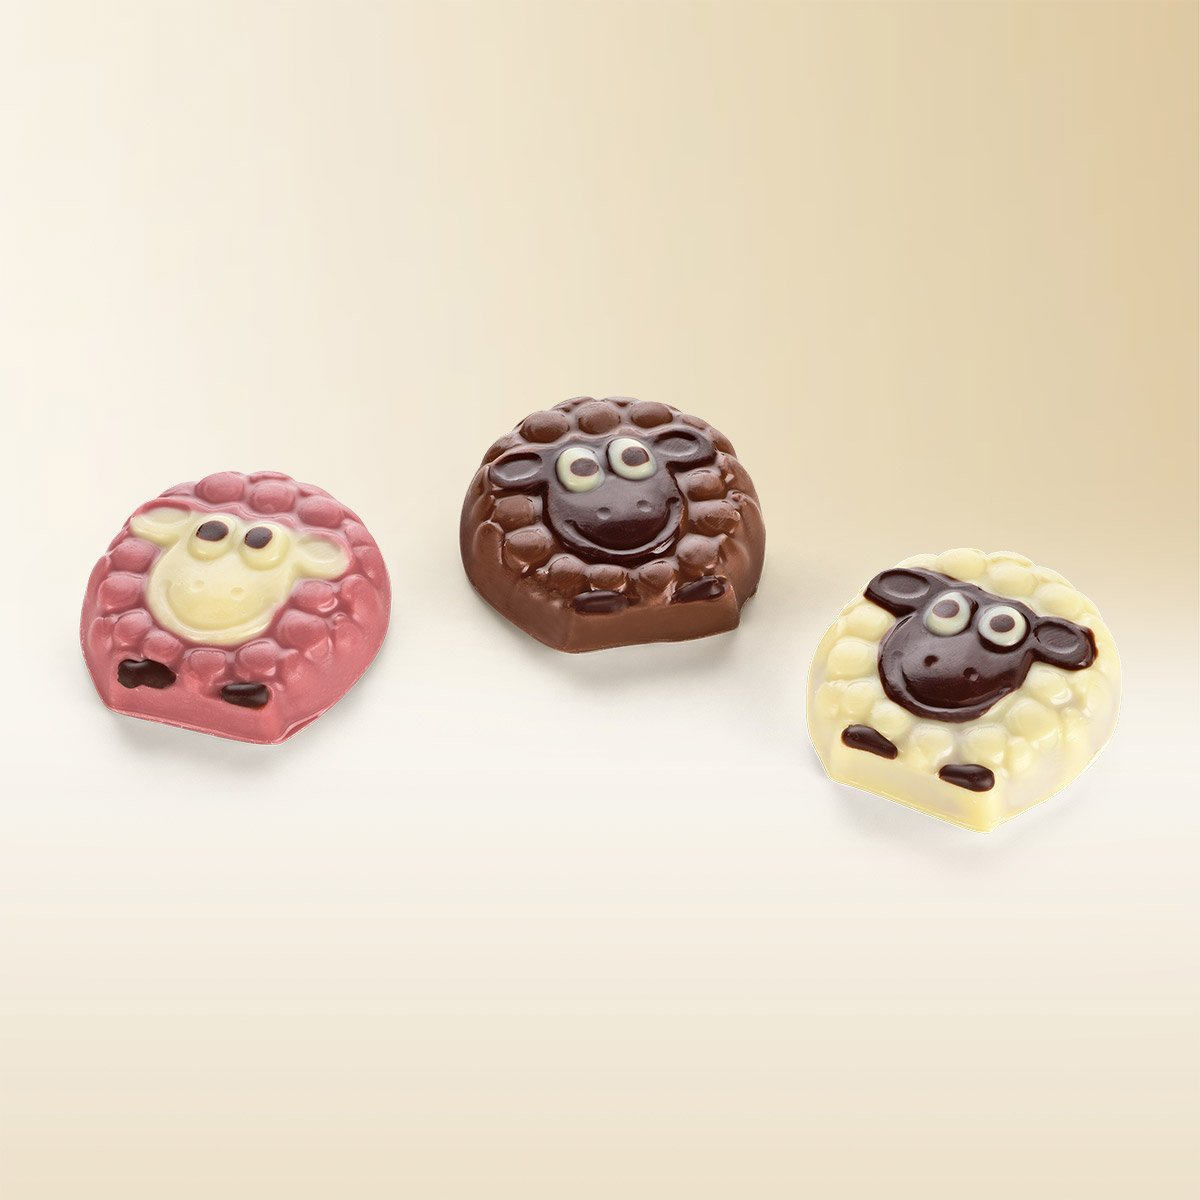 Les petits moutons Molly, Wolly et Dolly 100g